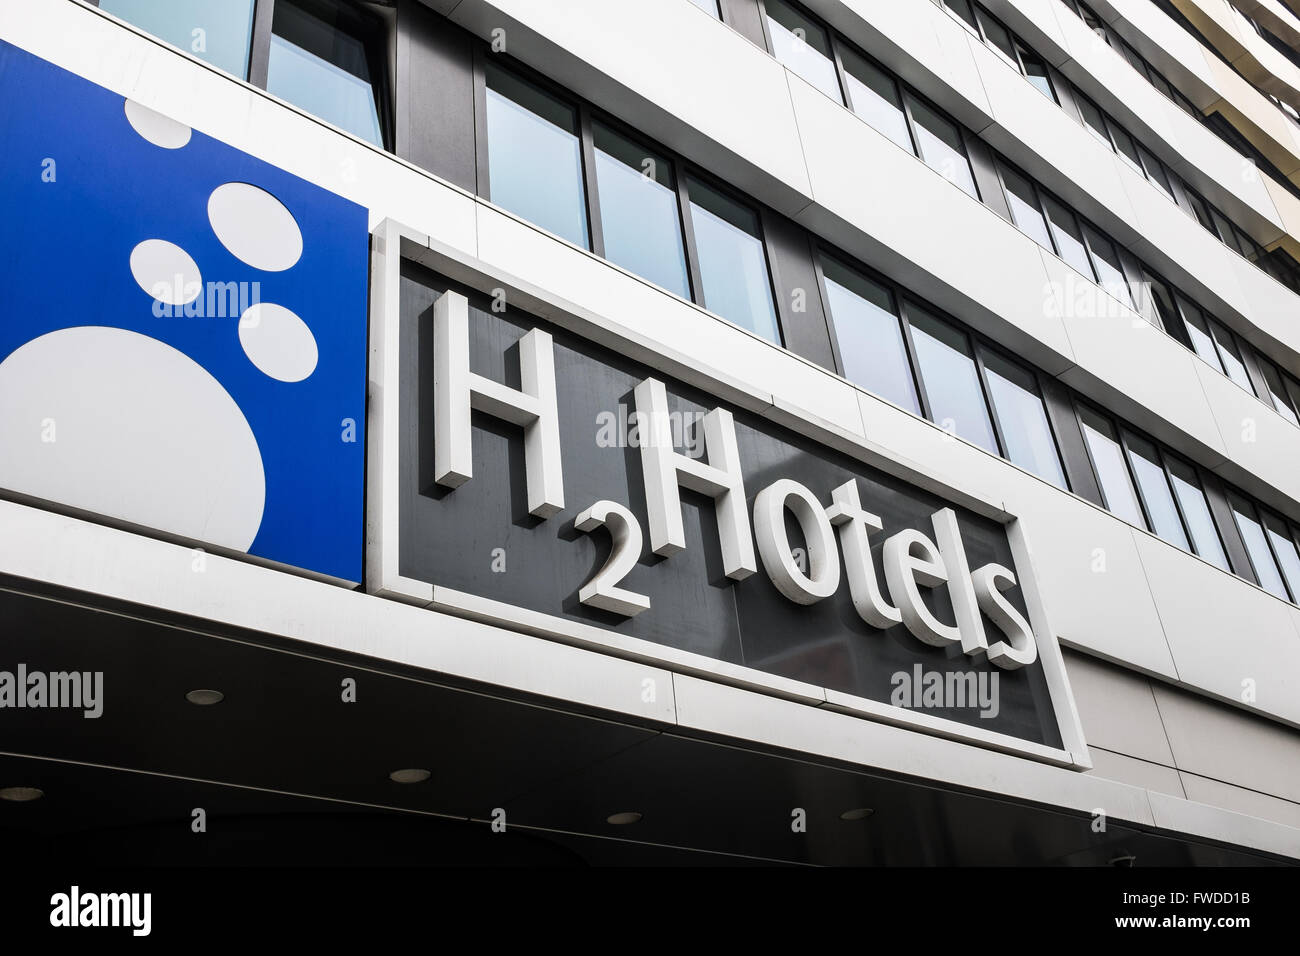 BERLIN, MARCH 31: The H2O hotels facade in the Karl